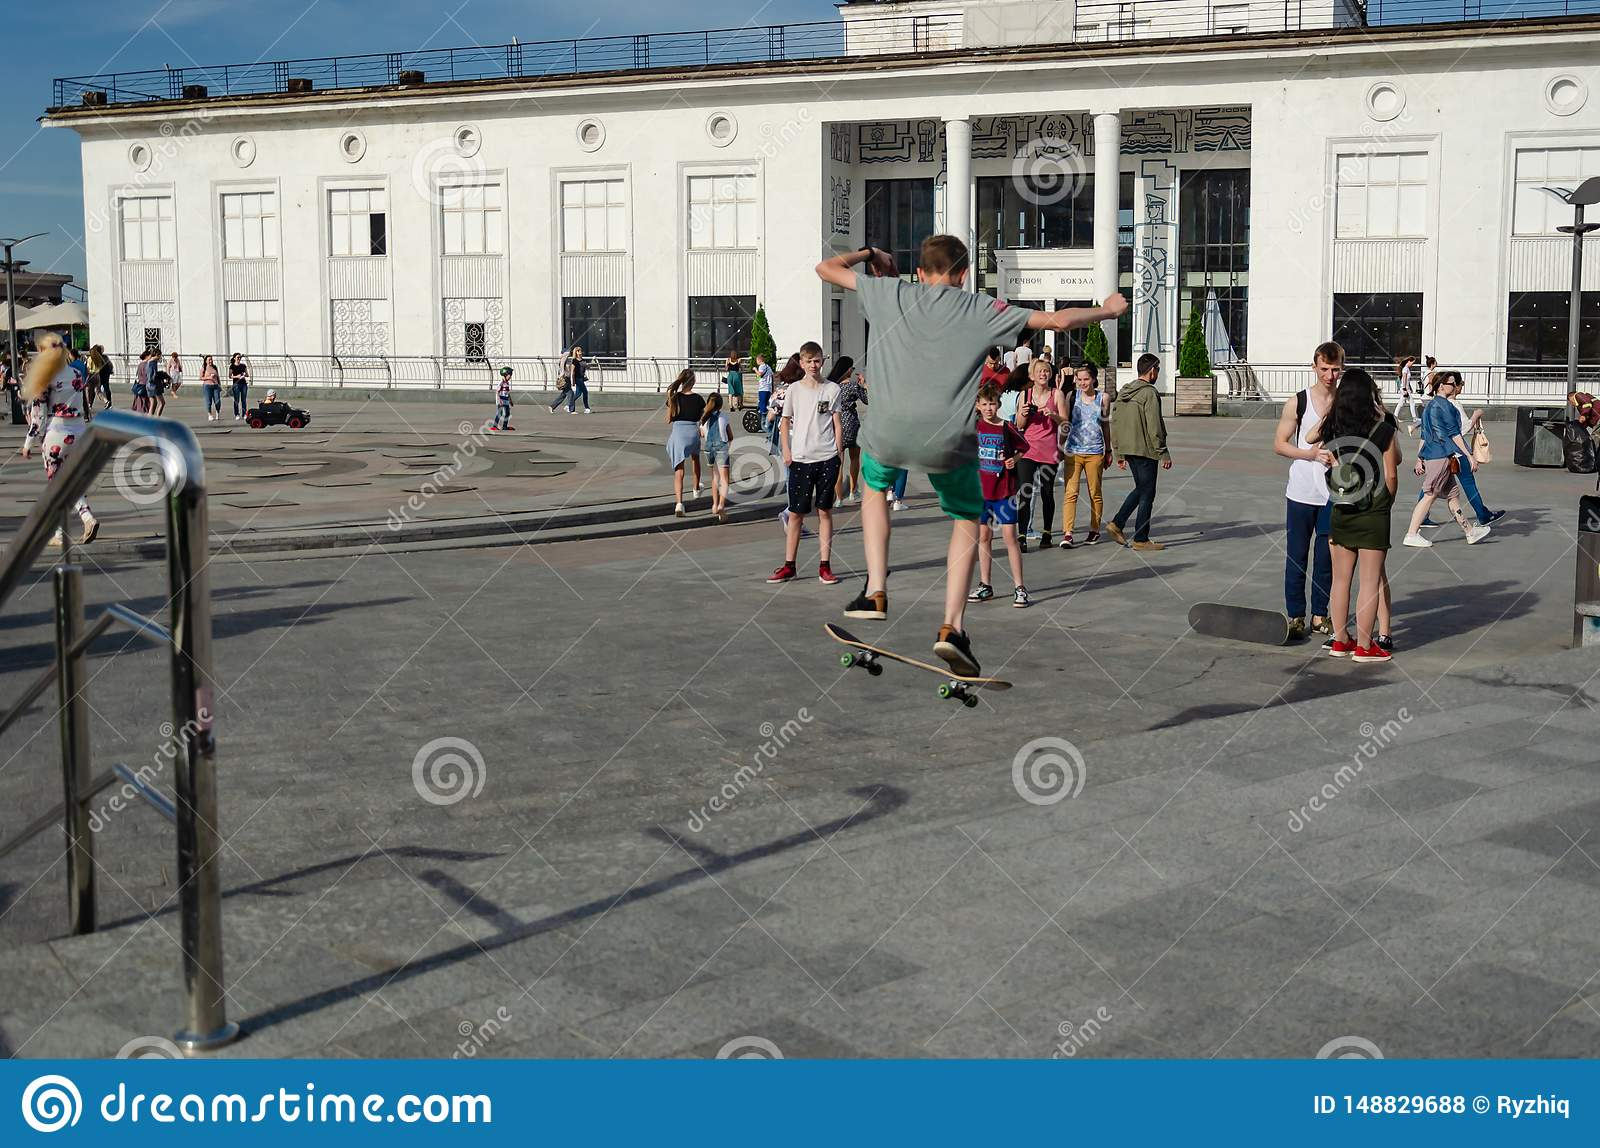 Kyiv, Ukraine - May 18, 2019. Poshtova square. Teen skateboarder practicing tricks